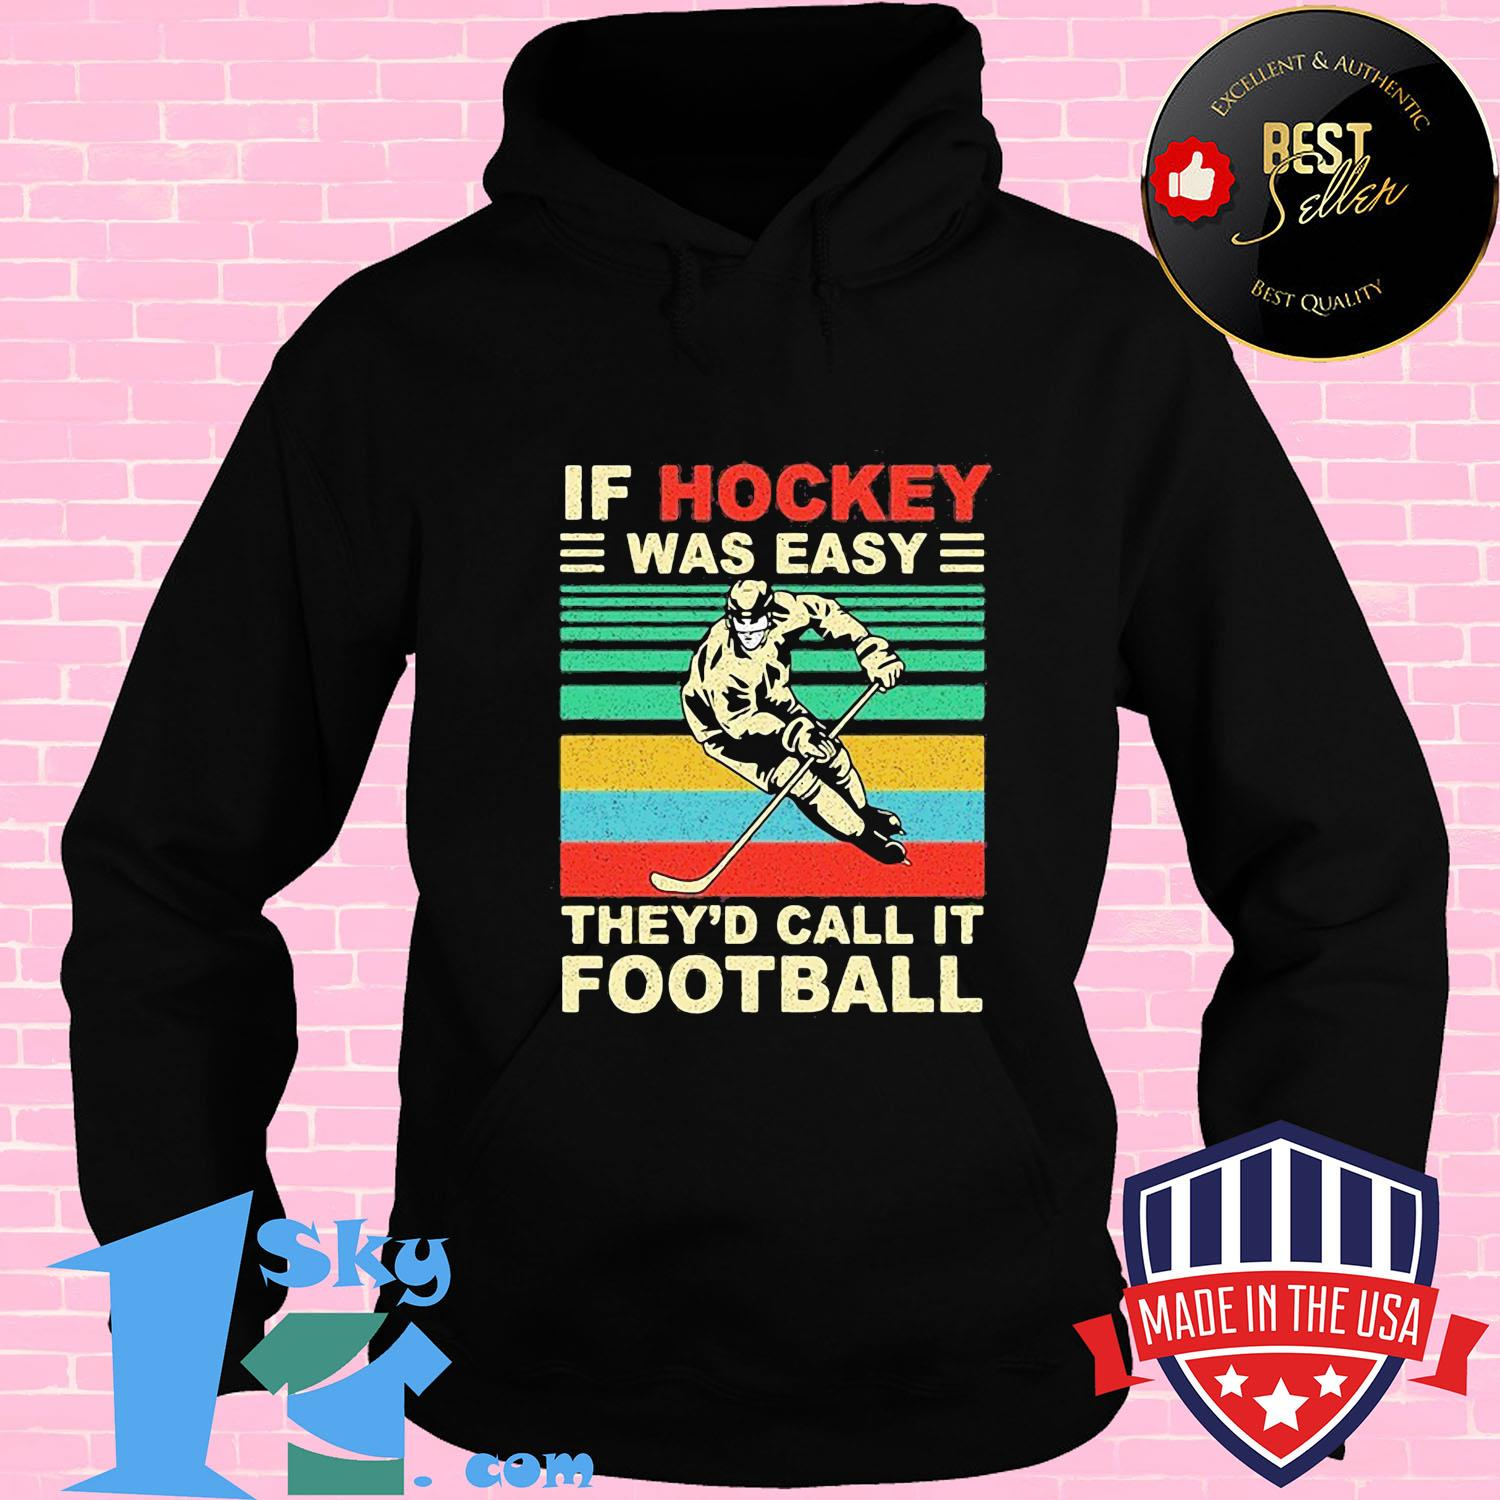 01d44442 if hockey was easy they d call it football vintage shirt hoodie - Shop trending - We offer all trend shirts - 1SkyTee